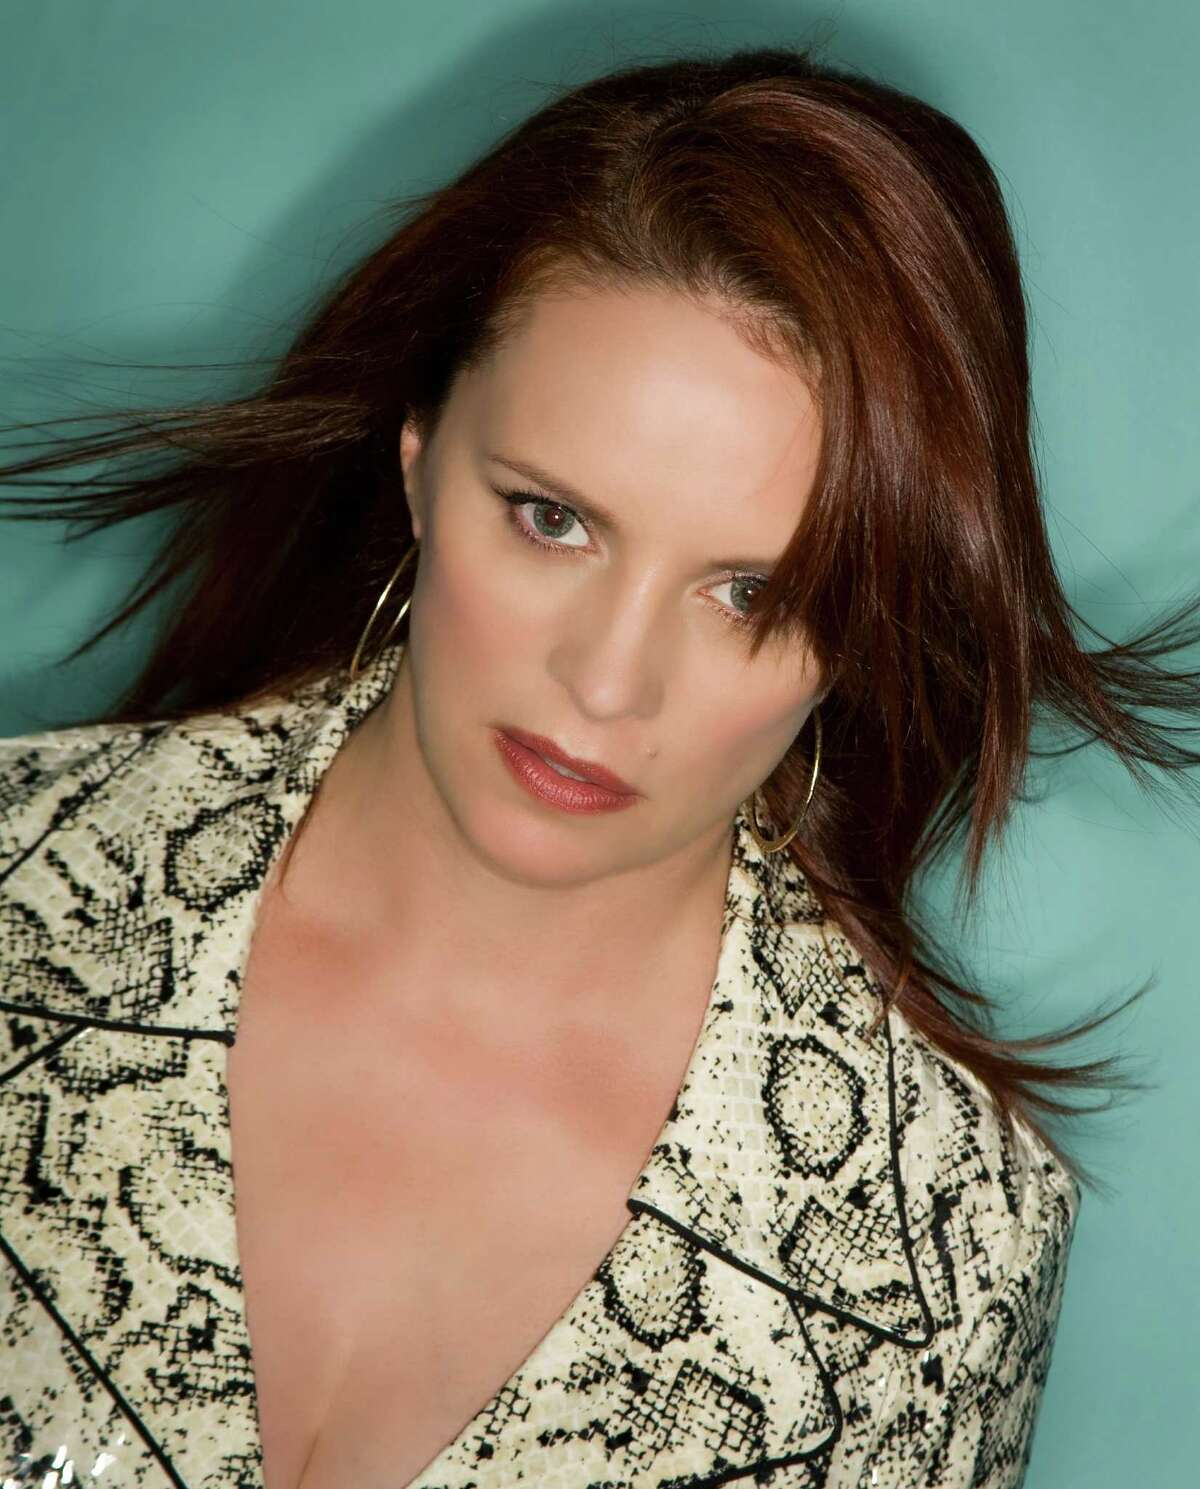 Grammy Award winning singer Sheena Easton will perform Friday, Feb. 14, 2014, at the Edgerton Center for the Arts at Sacred Heart University in Fairfield, Conn. For tickets, visit www.edgertoncenter.org or call 203-371-7908.